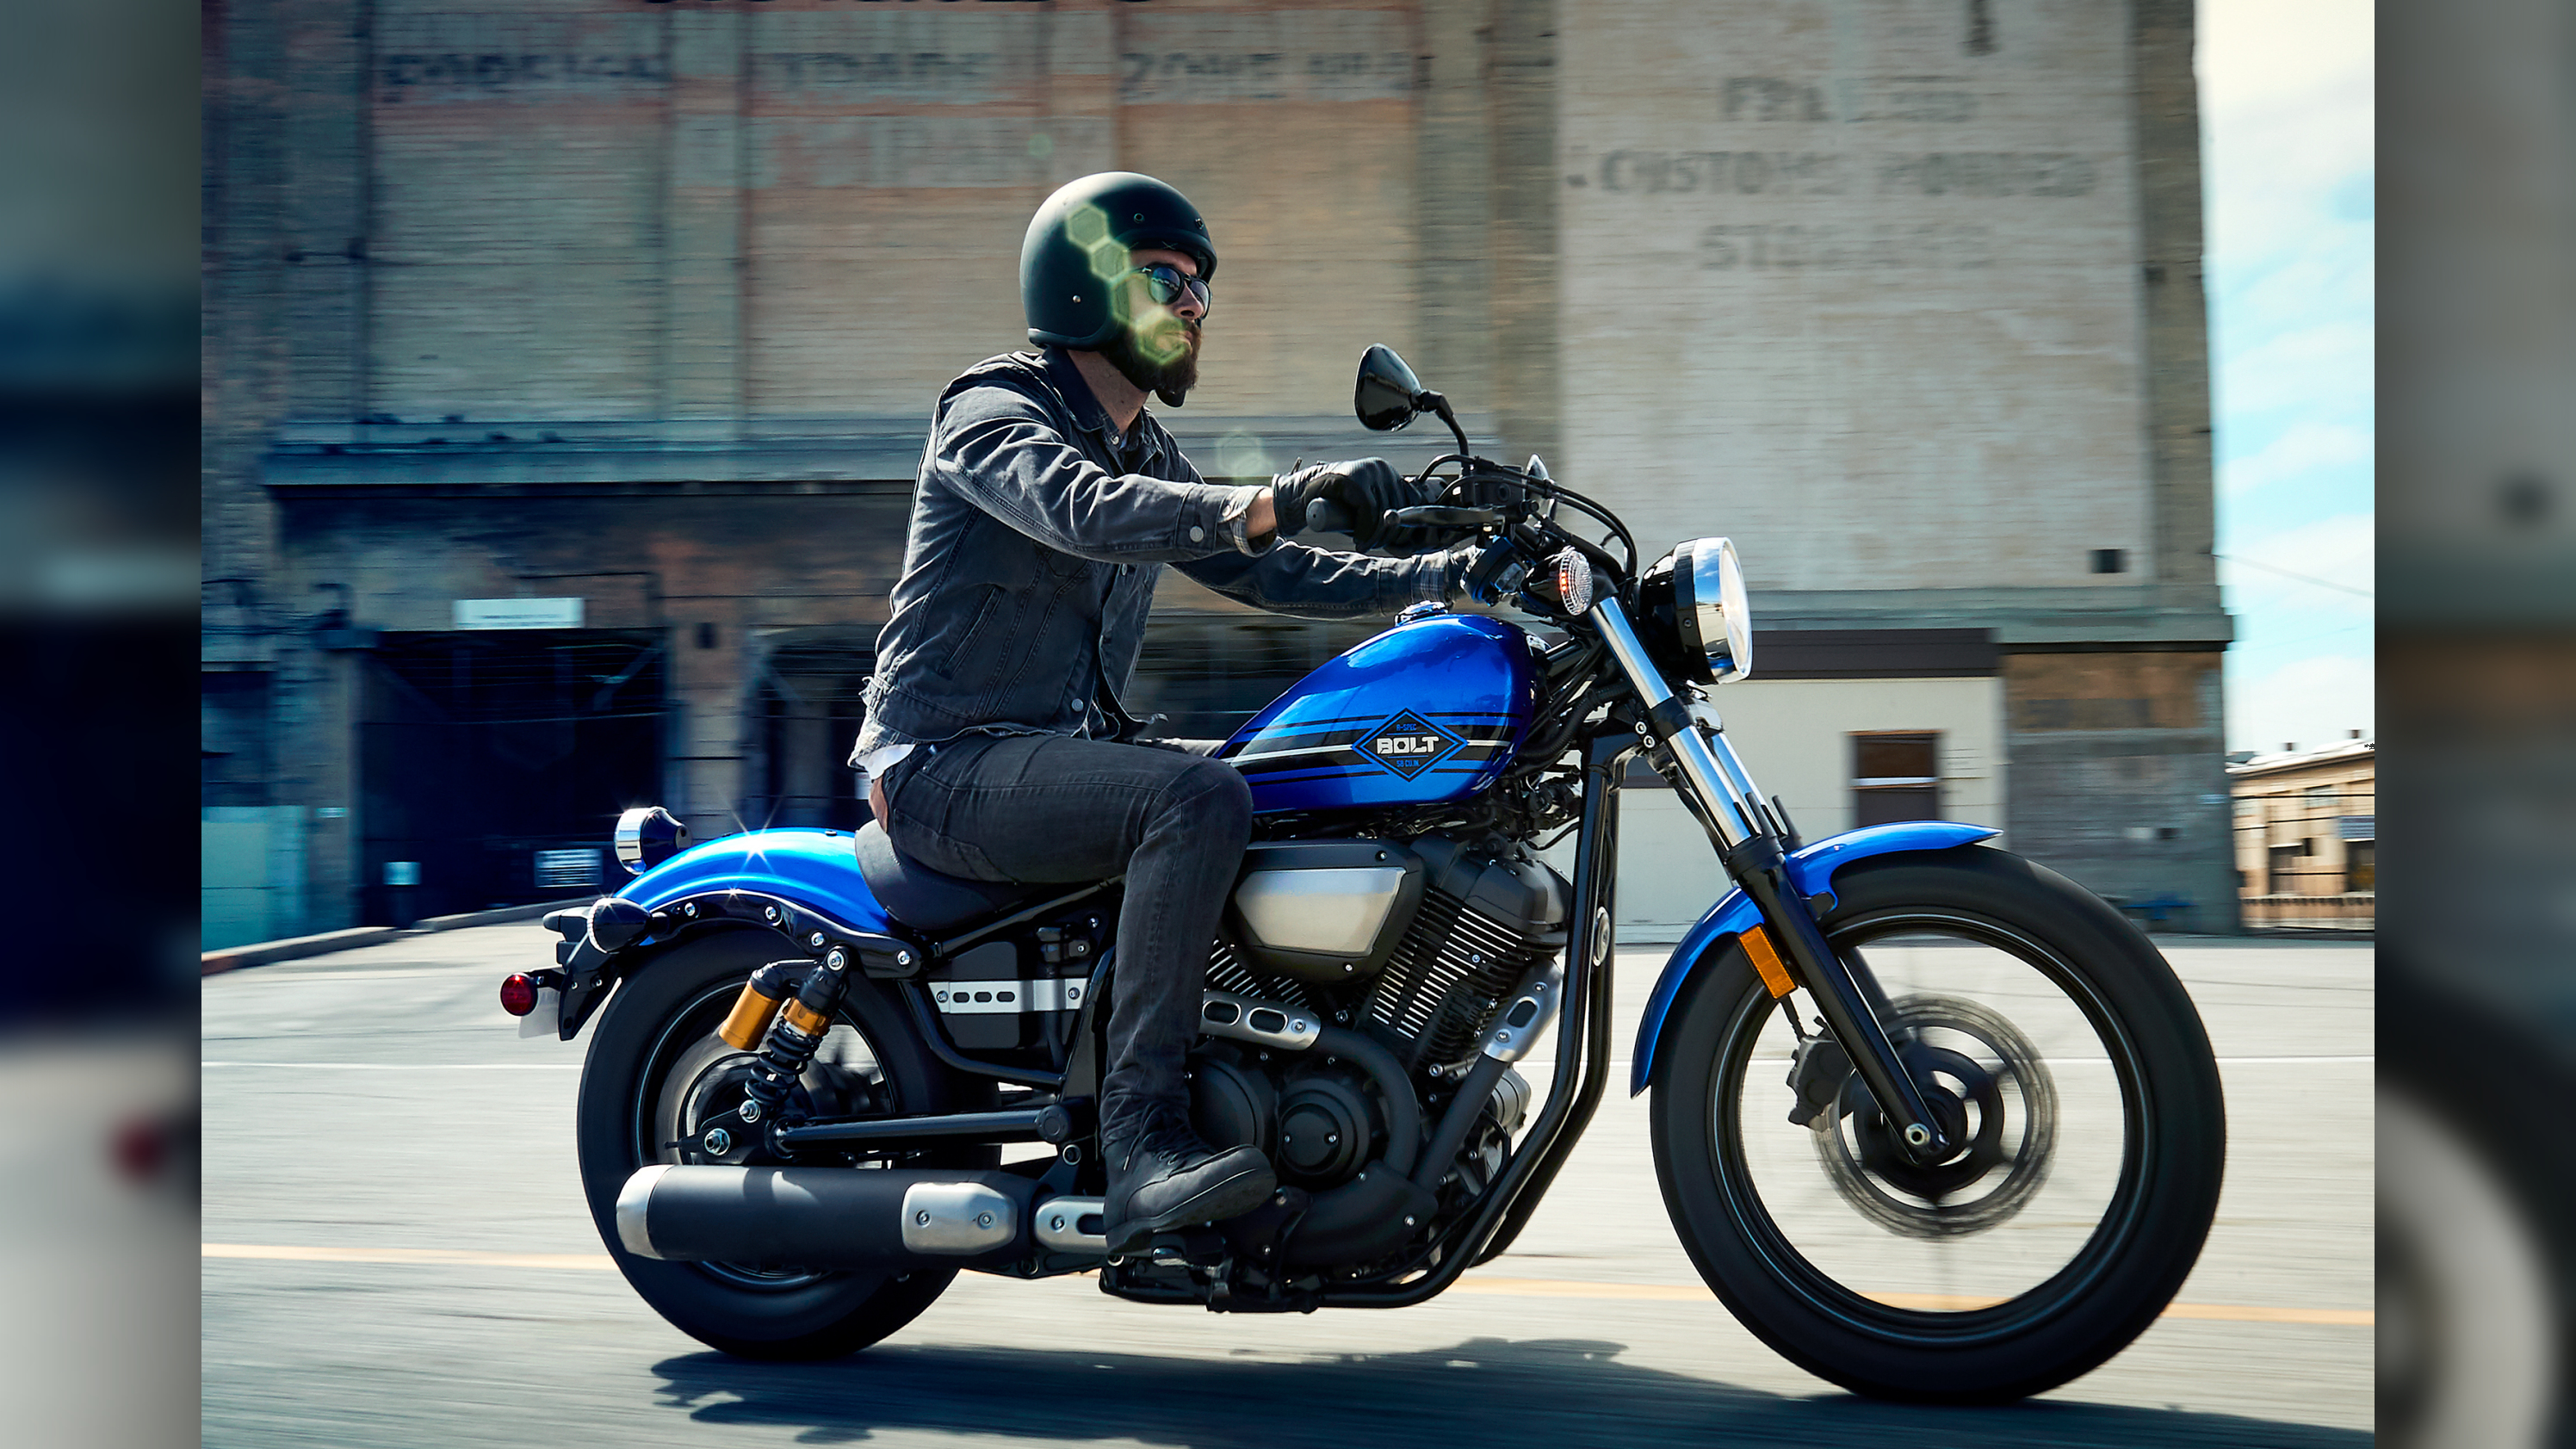 The Bolt From Yamahas Star Cruiser Line Is A Cool Little Bobber Style Bike With Its High Tank Short Wheelbase And Solo Seat Nice Around Town